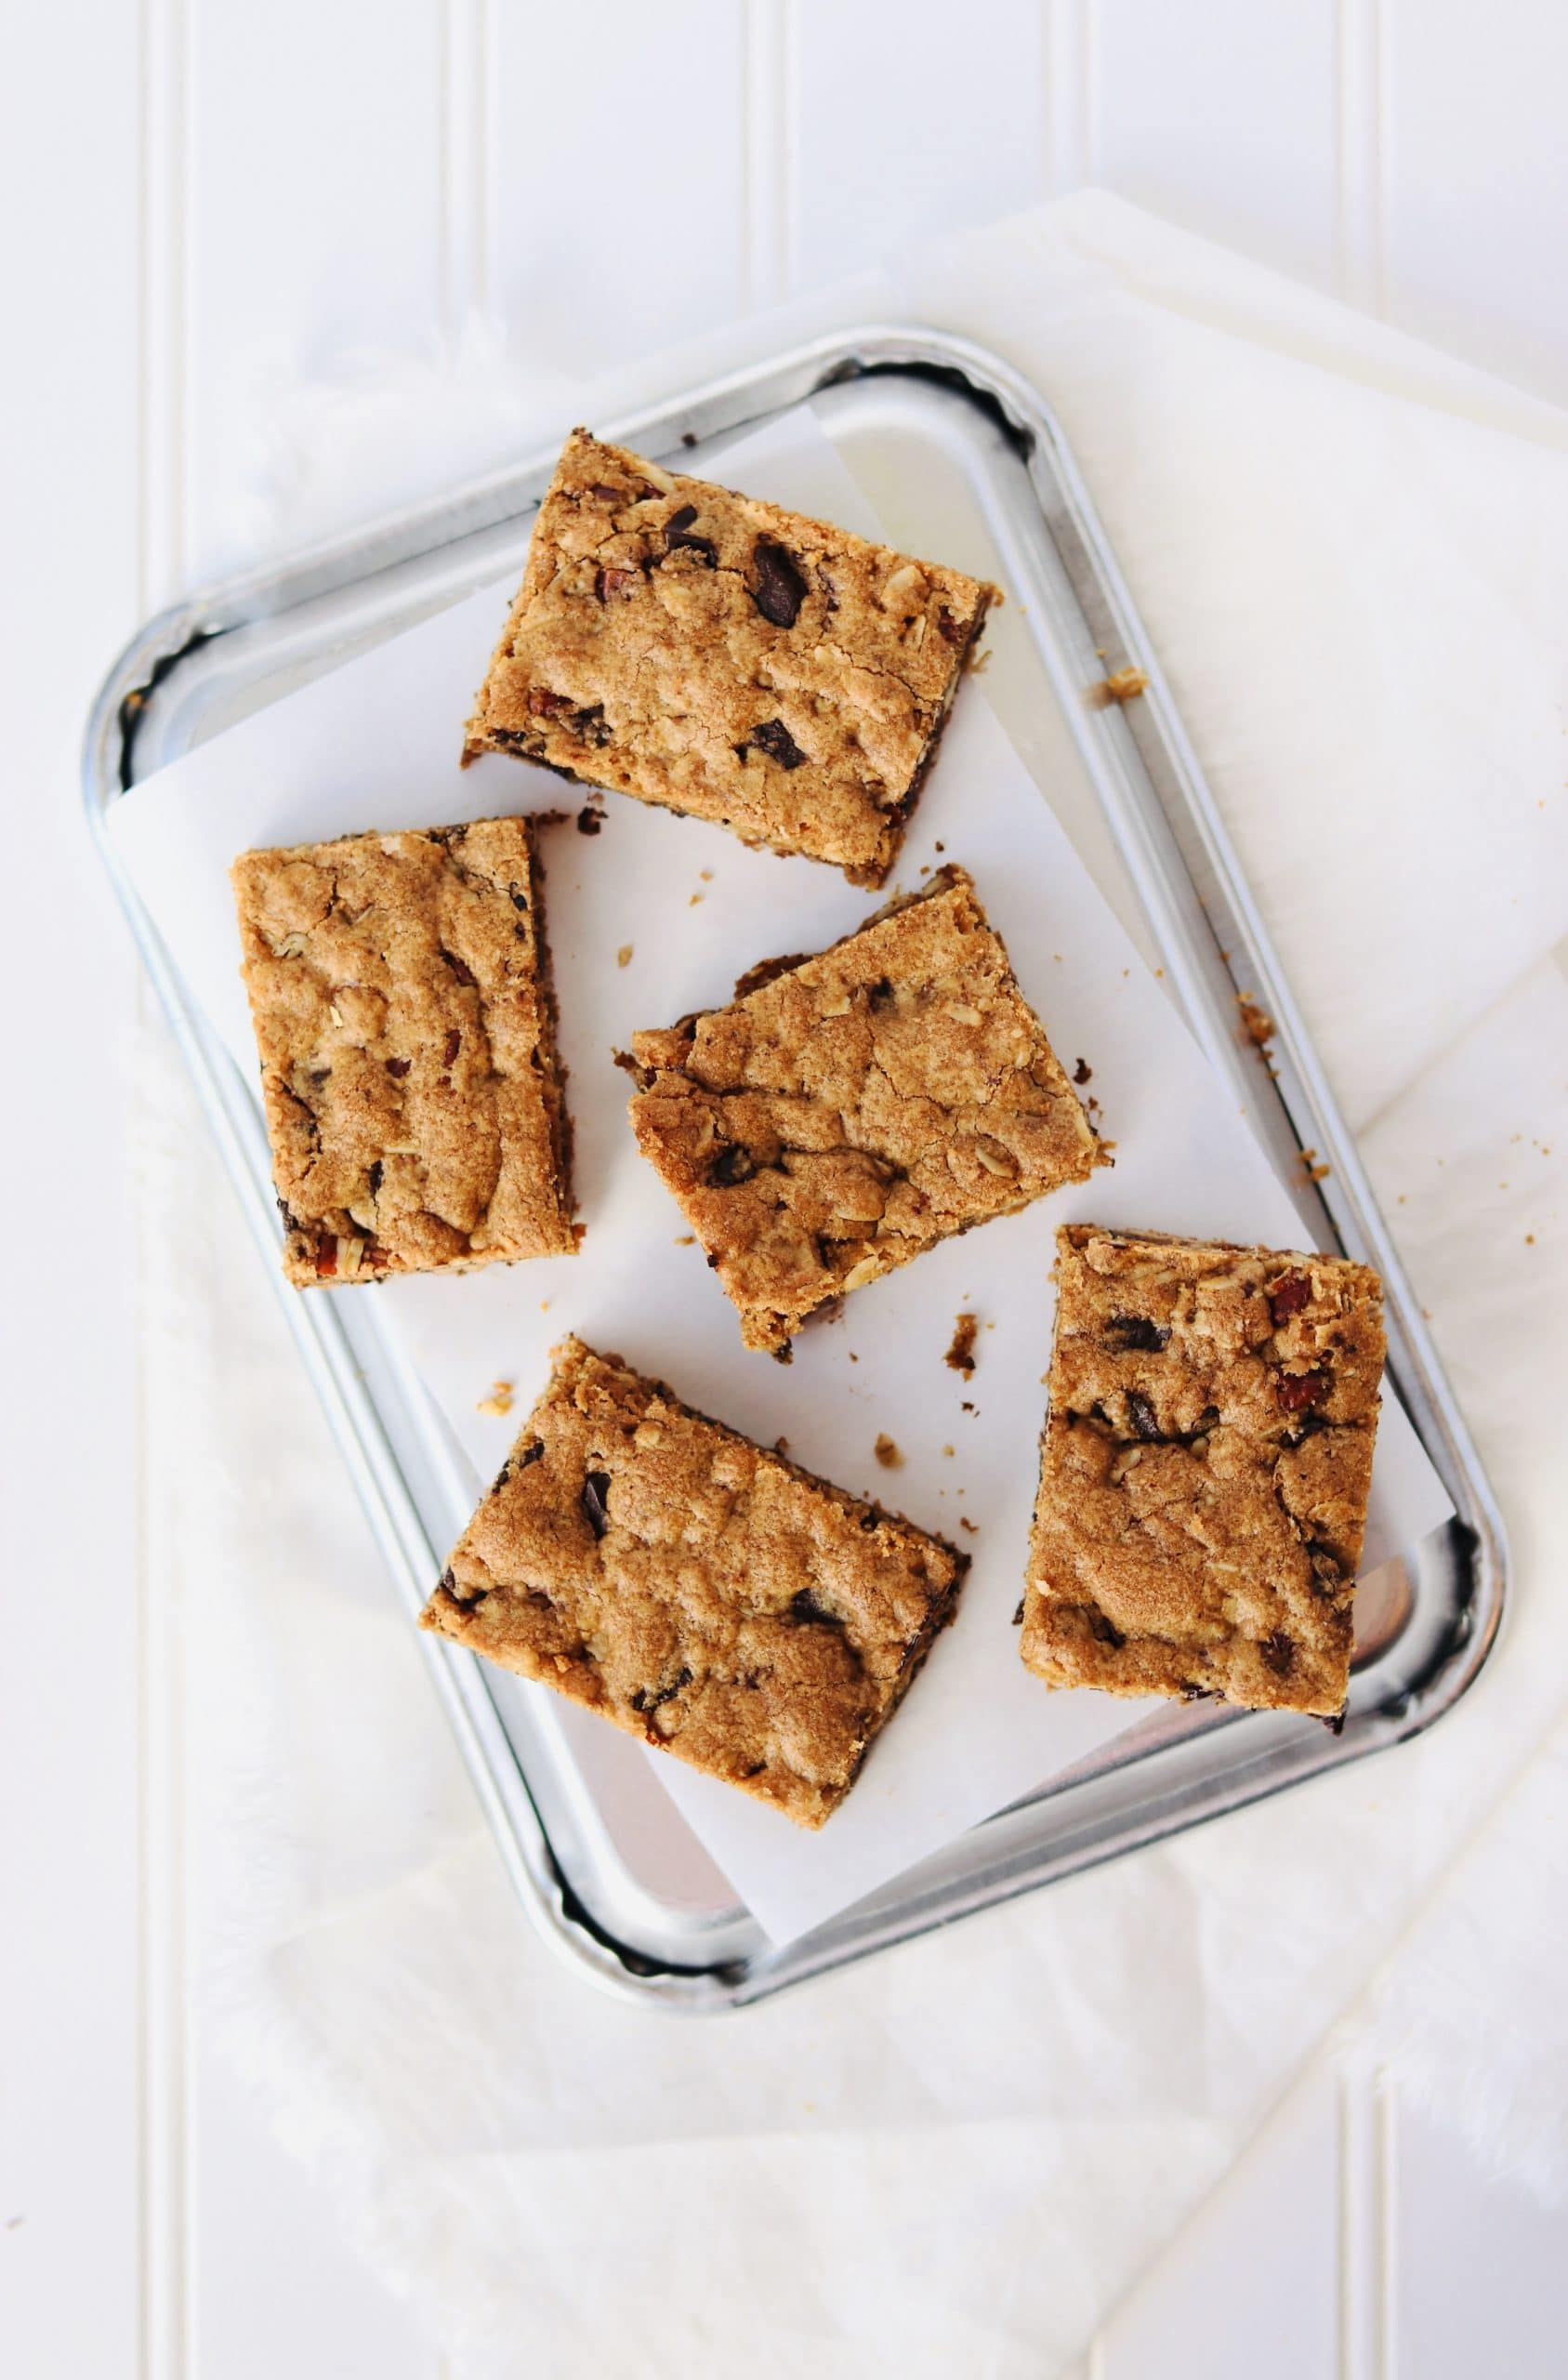 Brown Butter Pecan Blondies are the ultimate dessert. Rich and decadent flavor, crispy tops and edges, and chewy gooey centers. Browned Butter adds a nutty flavor and lots of mix-ins (oats, toasted pecans, and chocolate chunks) make these blondies anything but boring.